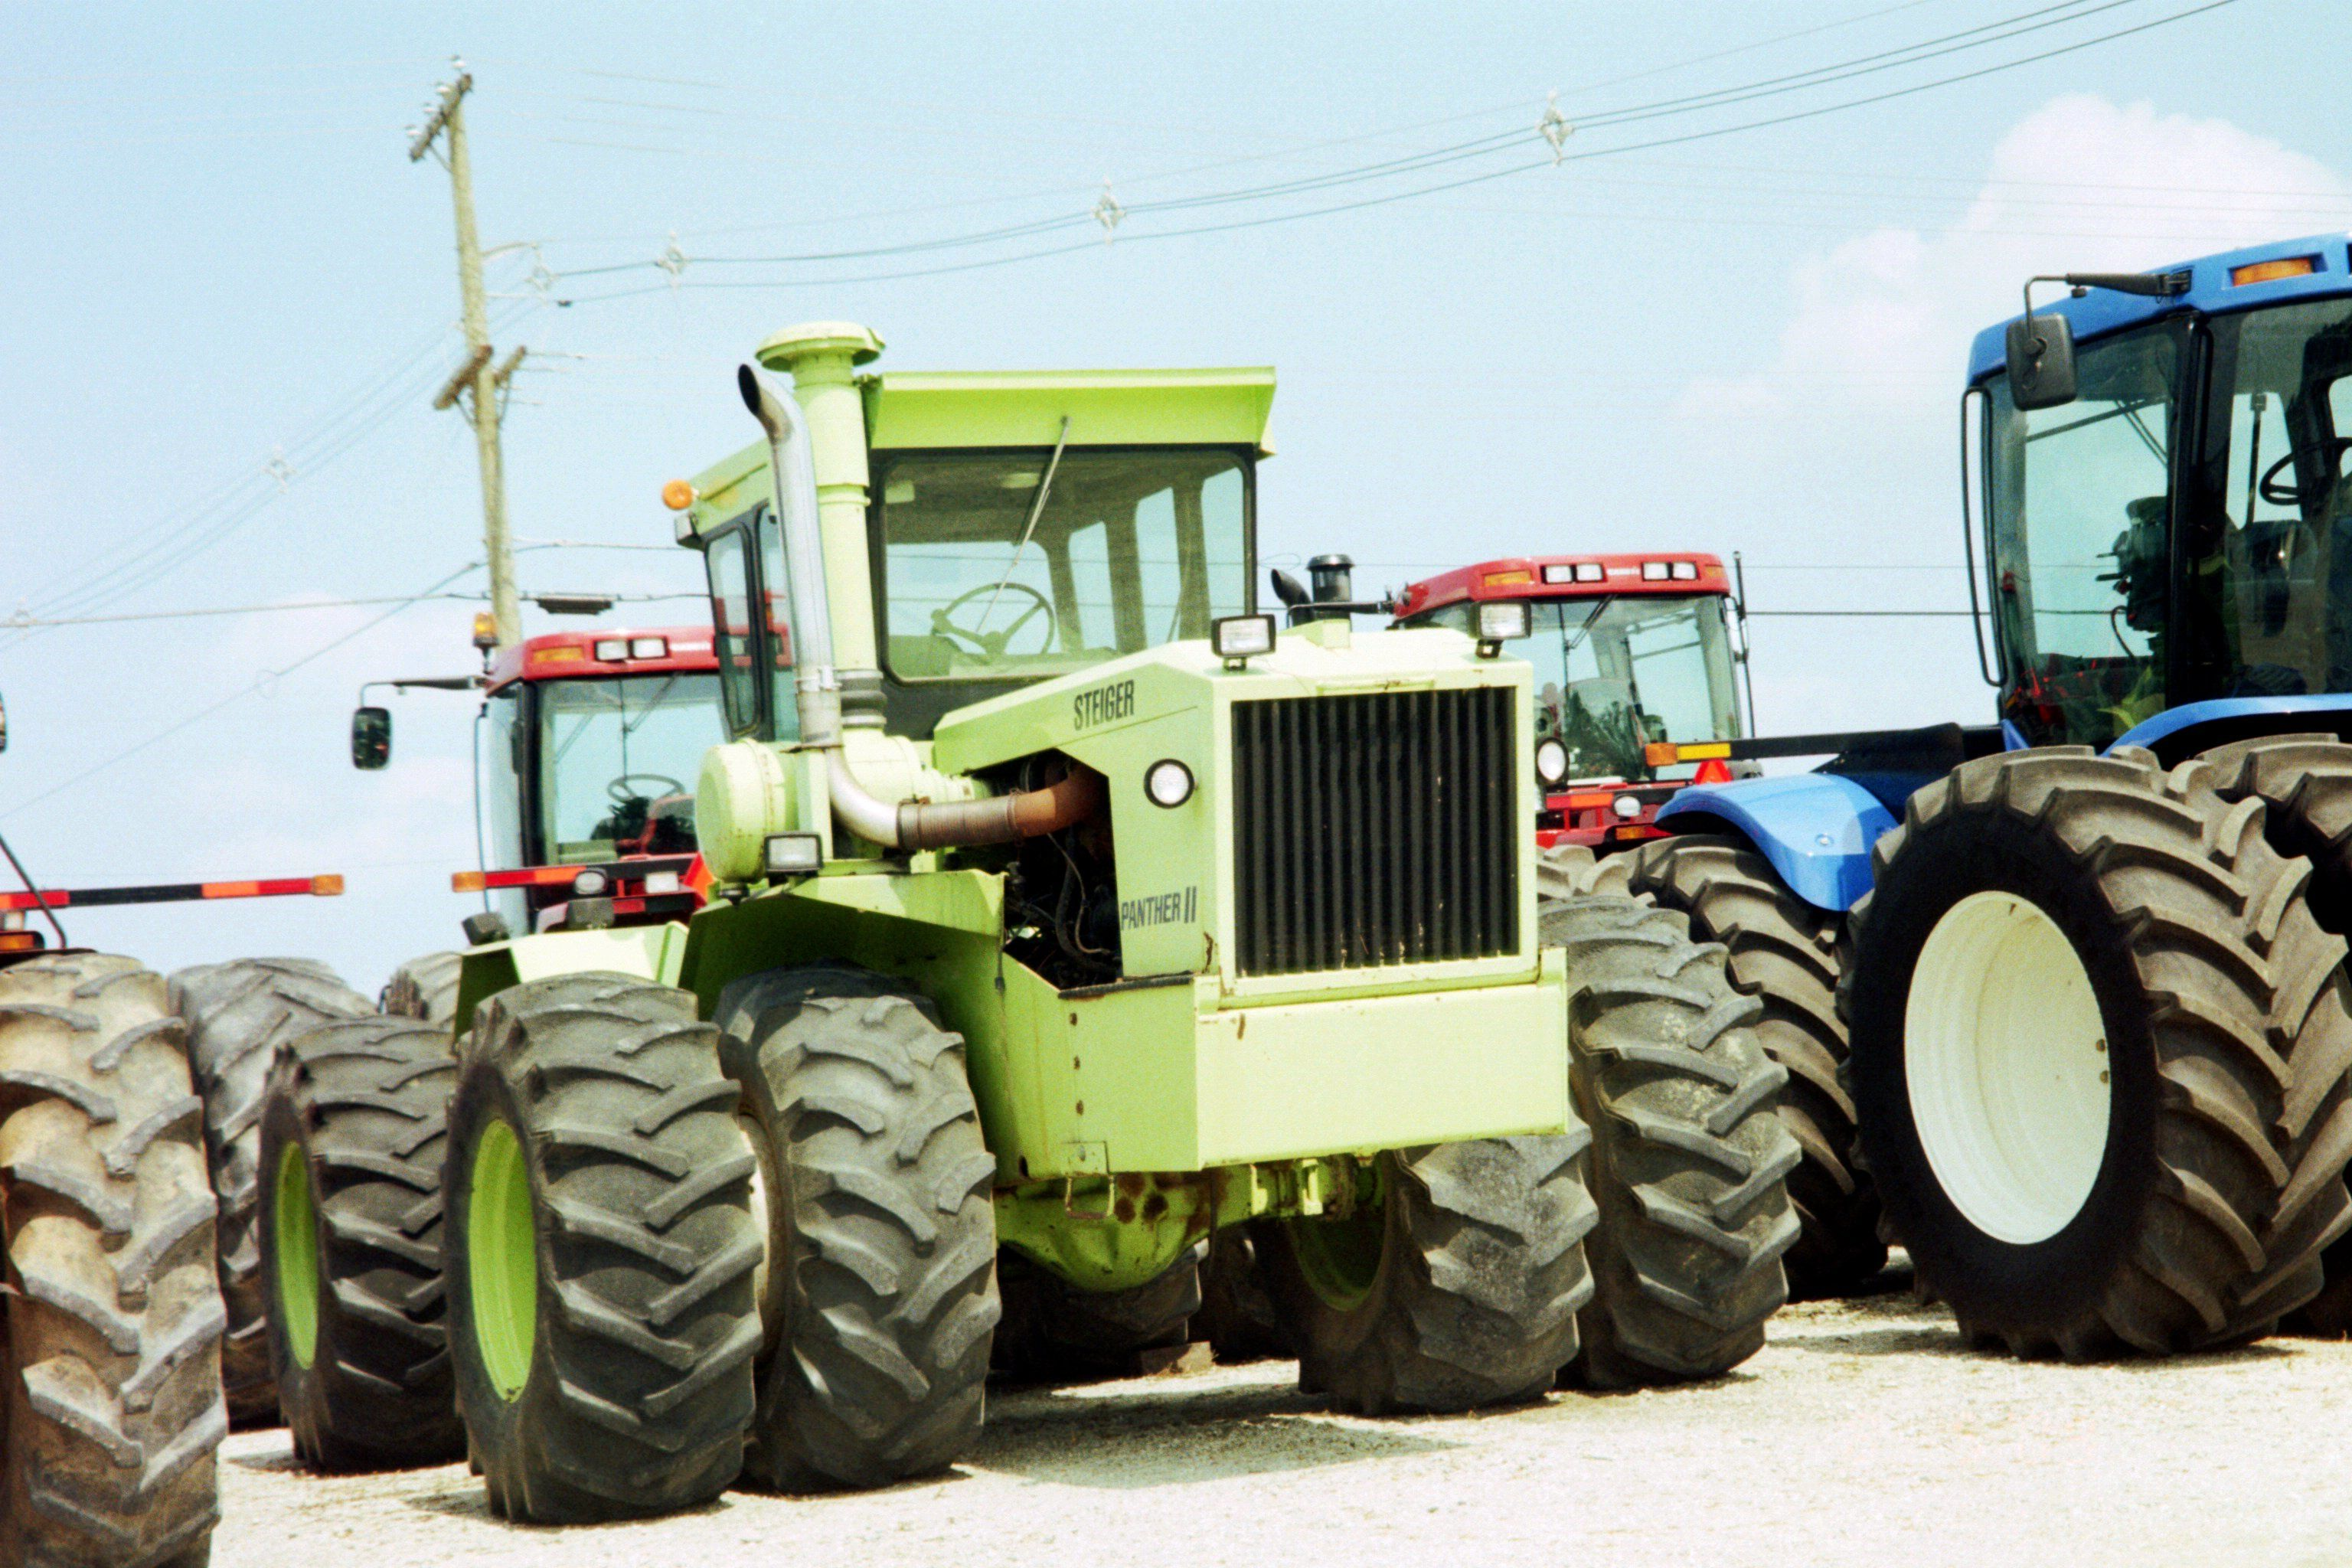 Farm Equipment For Sale In Alberta >> Old Steiger Panther 2 from early 1970s. | Big tractors, Farm trucks, Tractors